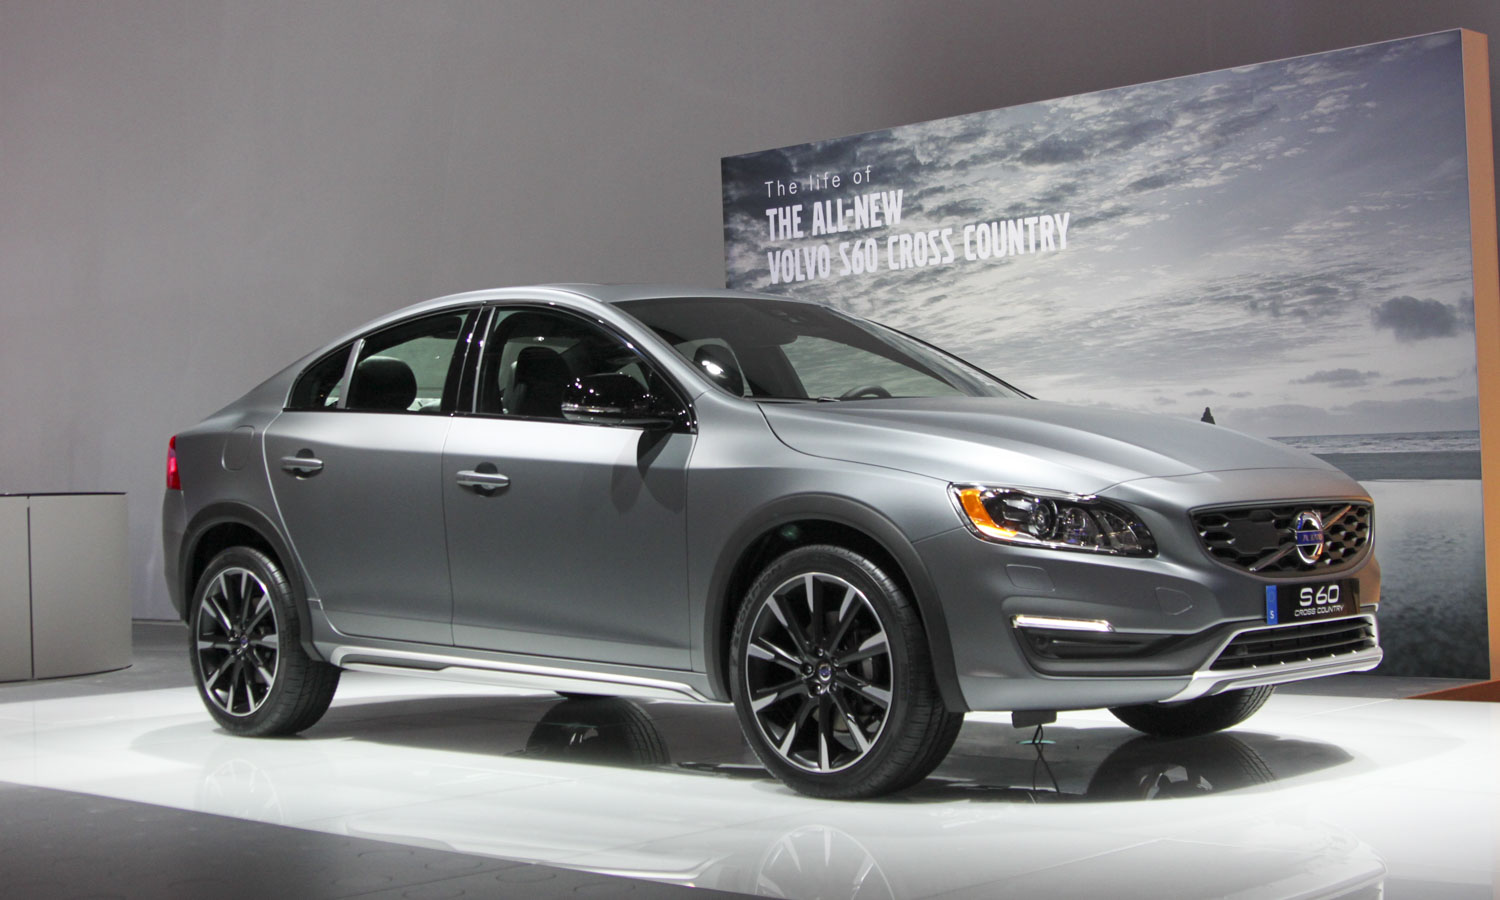 Volvo S60 Cross Country (c) Perry Stern